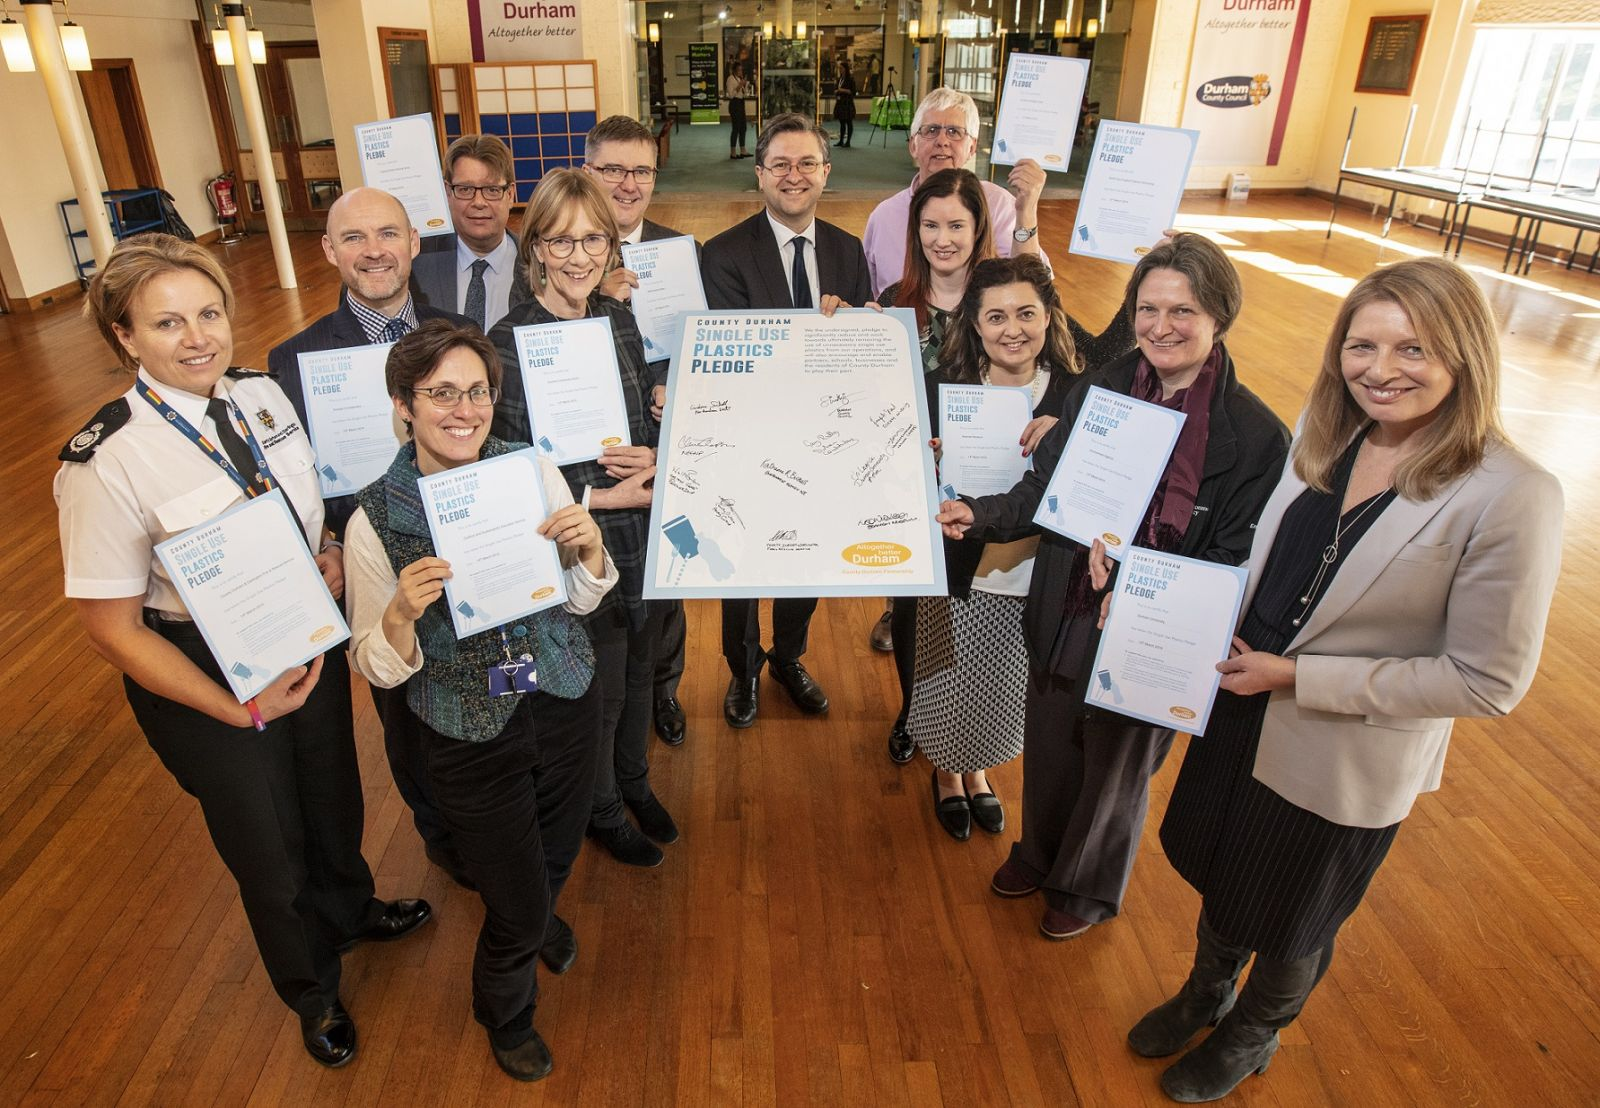 durham community action signs pledge to tackle single use